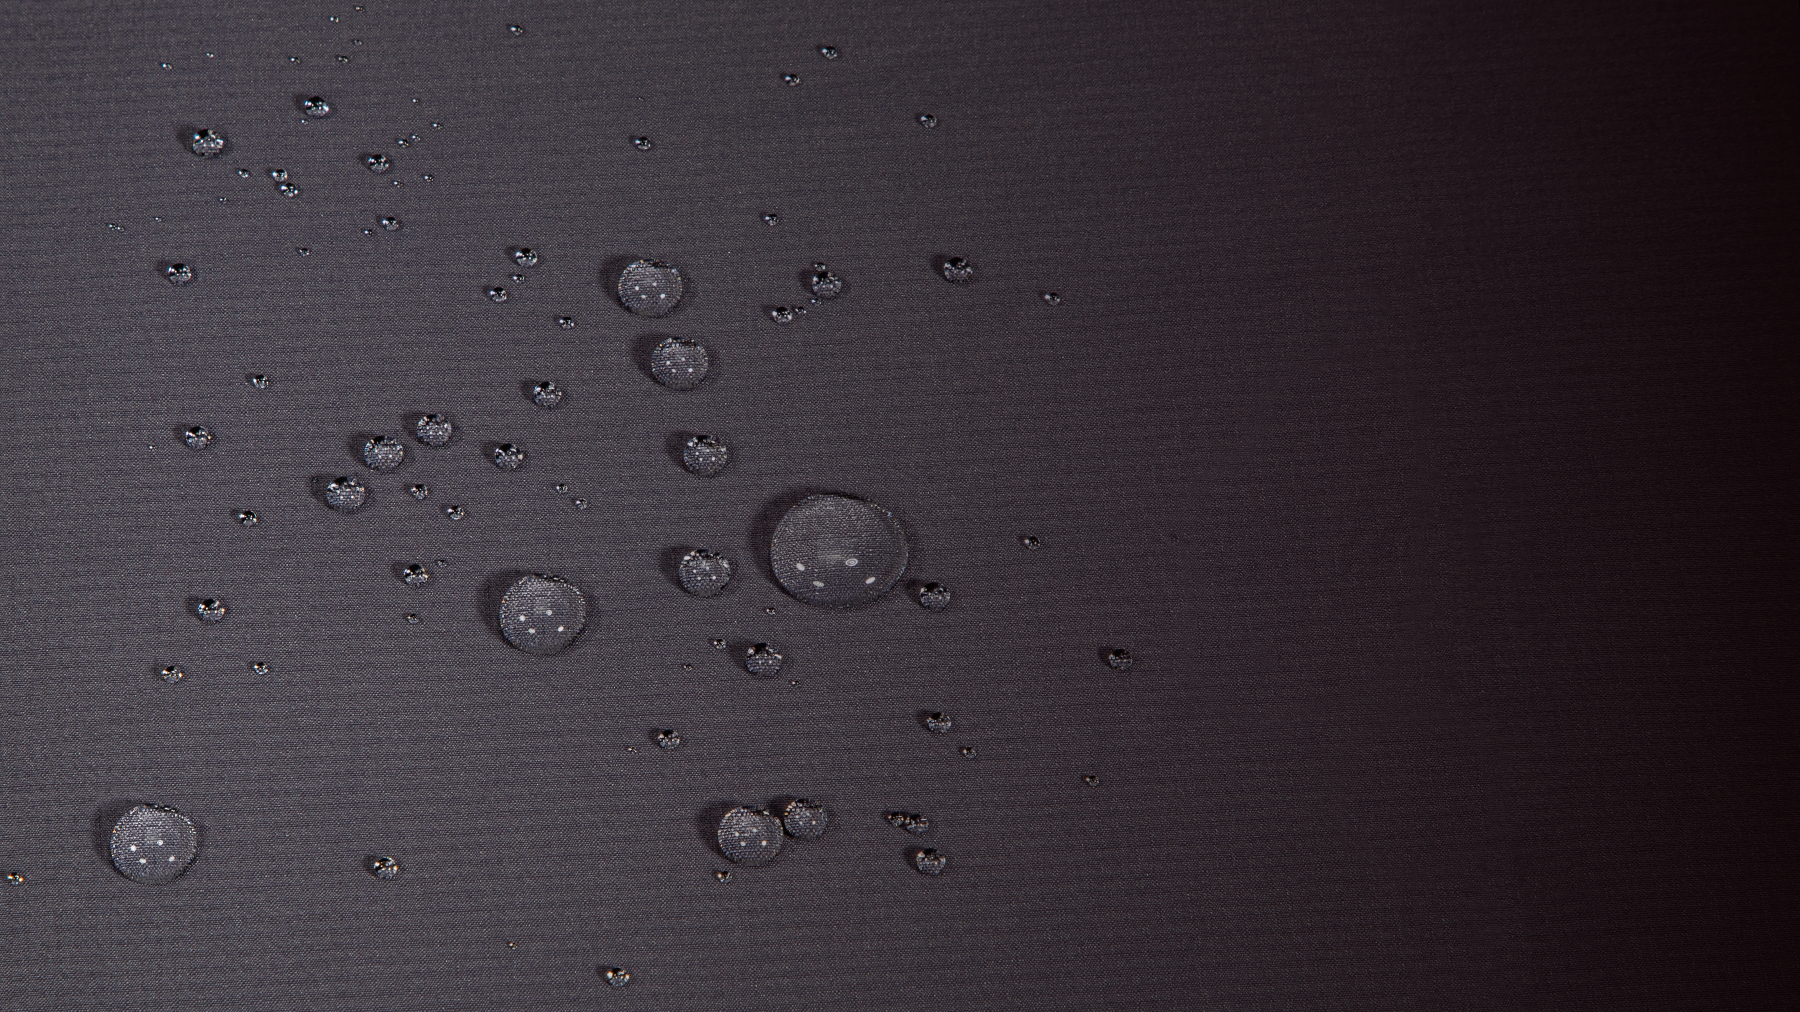 Water Droplets On DriMax Fabric